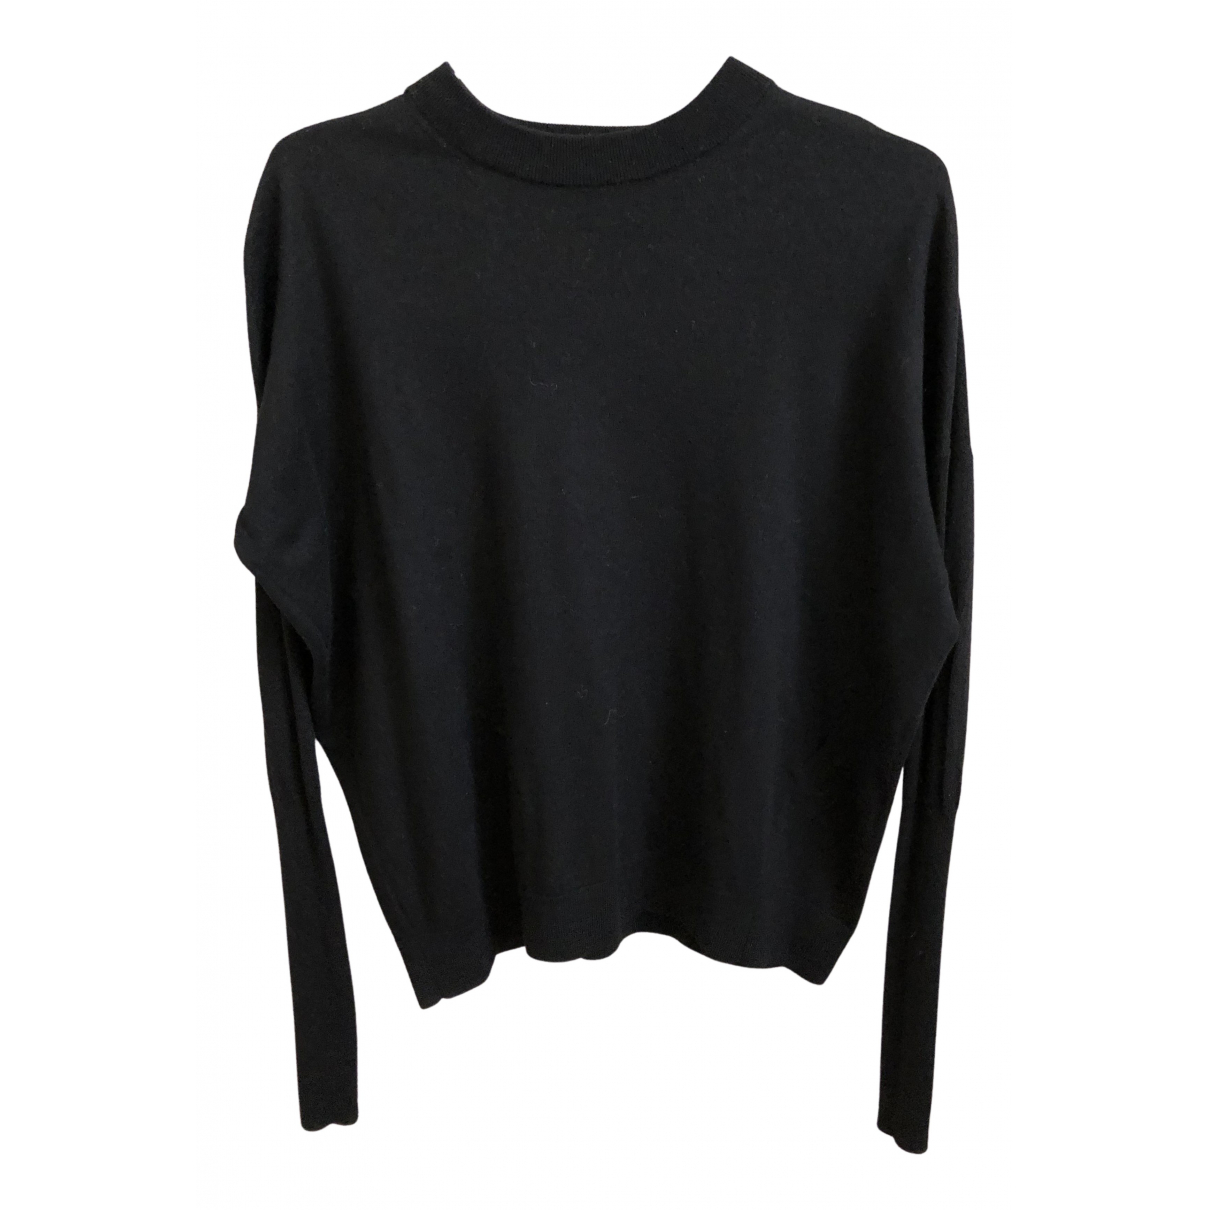 Acne Studios N Black Wool Knitwear for Women XS International